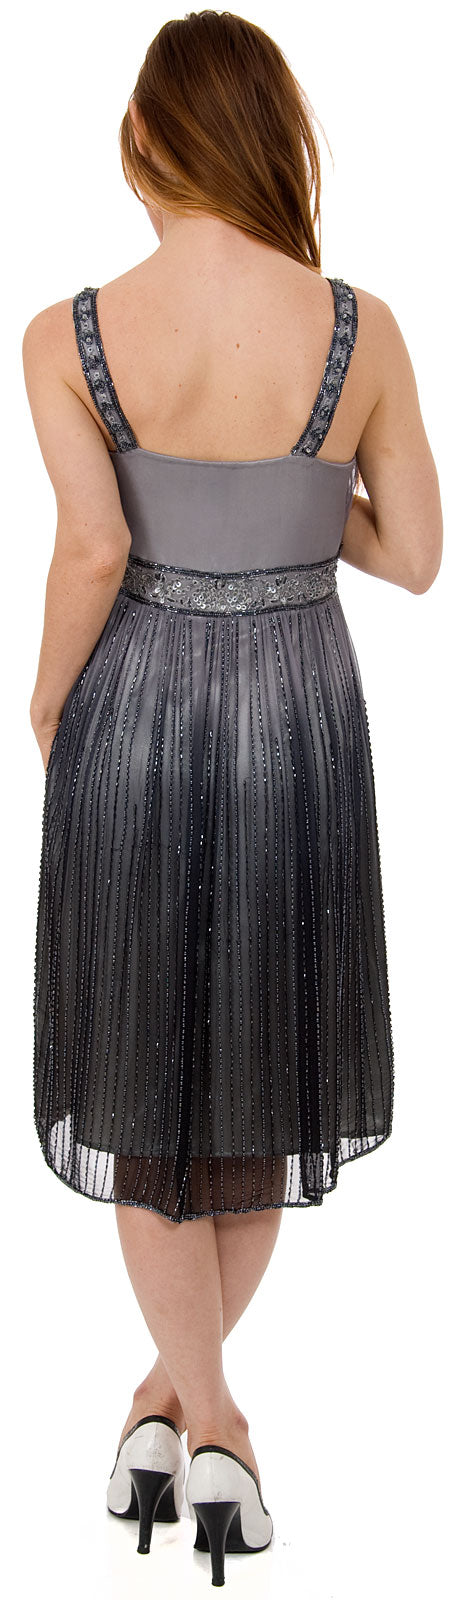 Back image of V-neck Two Tone Beaded Knee Length Formal Party Dress